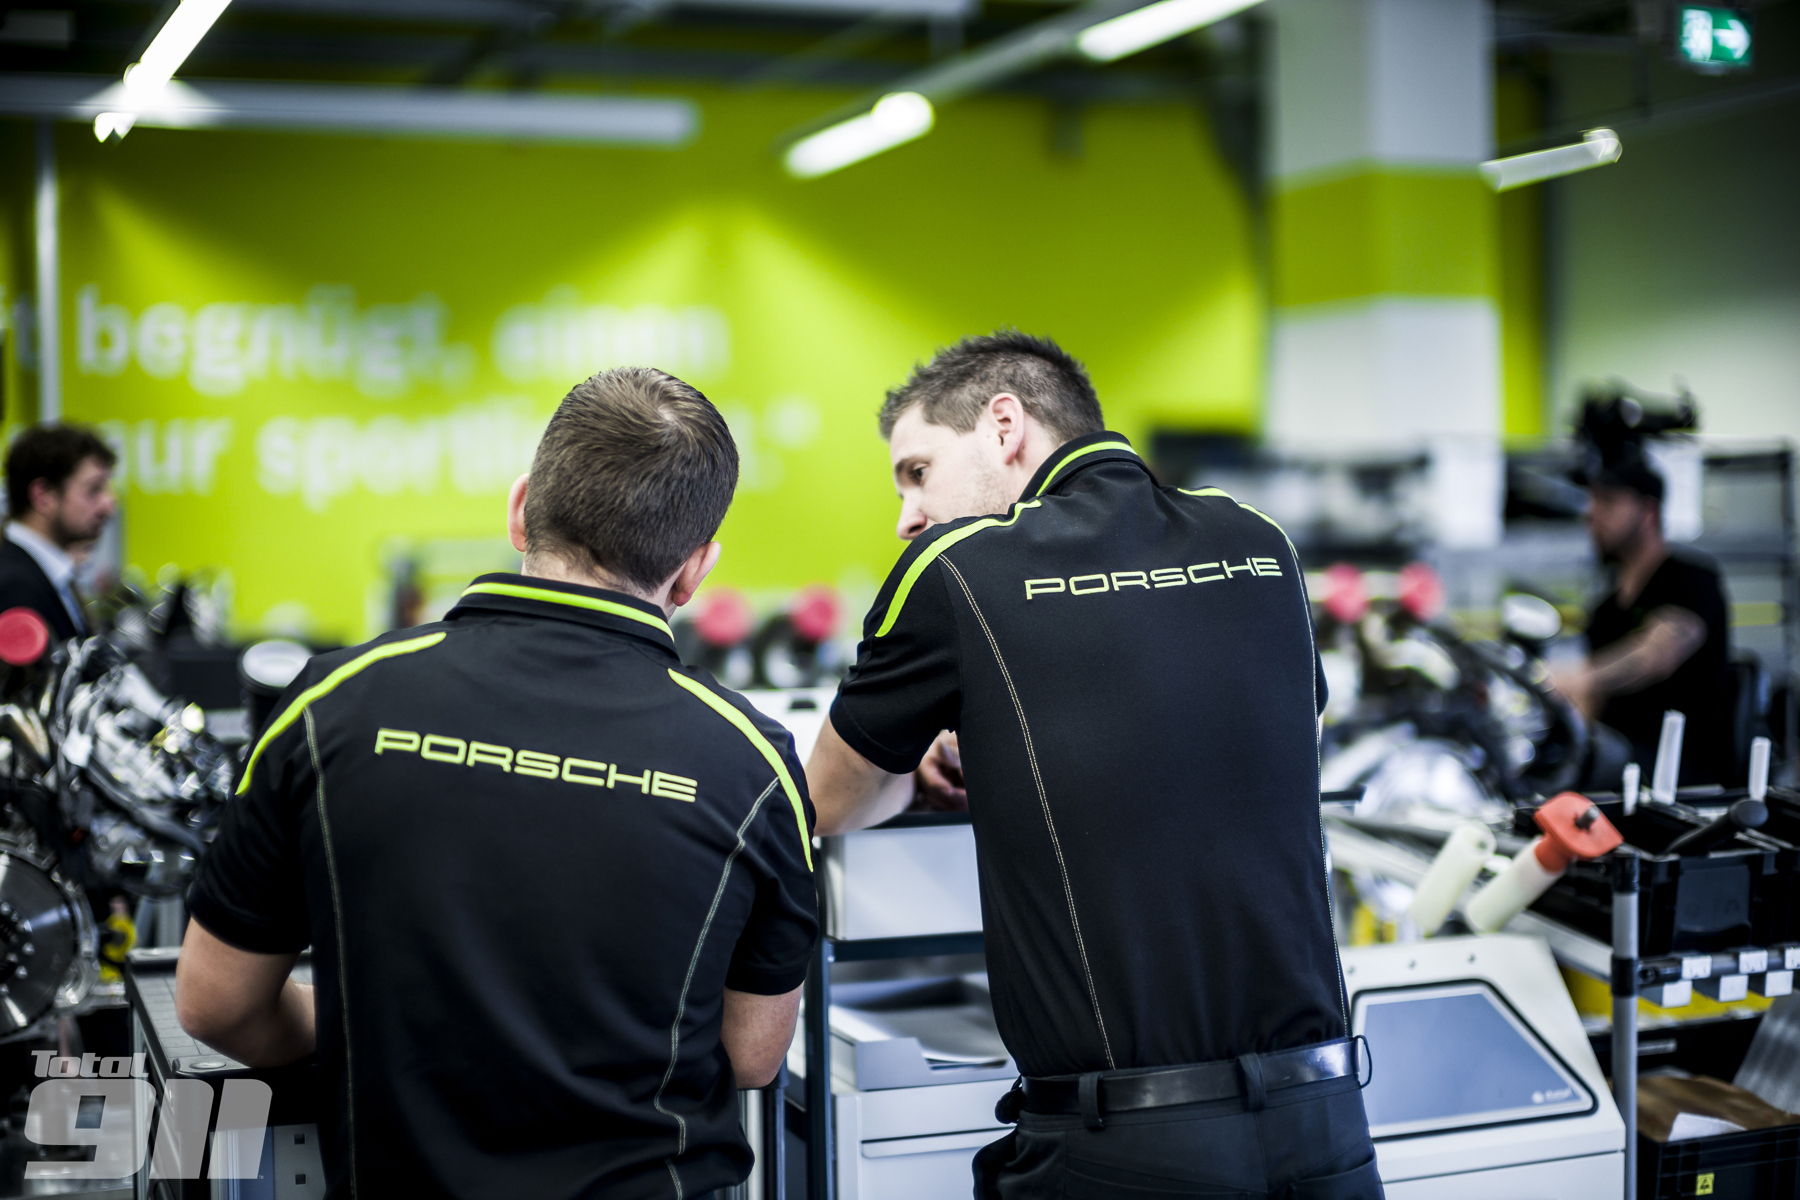 The 918 production line workers are the best of the best at Zuffenhausen. They wear their bespoke black-and-green uniform with immense pride.